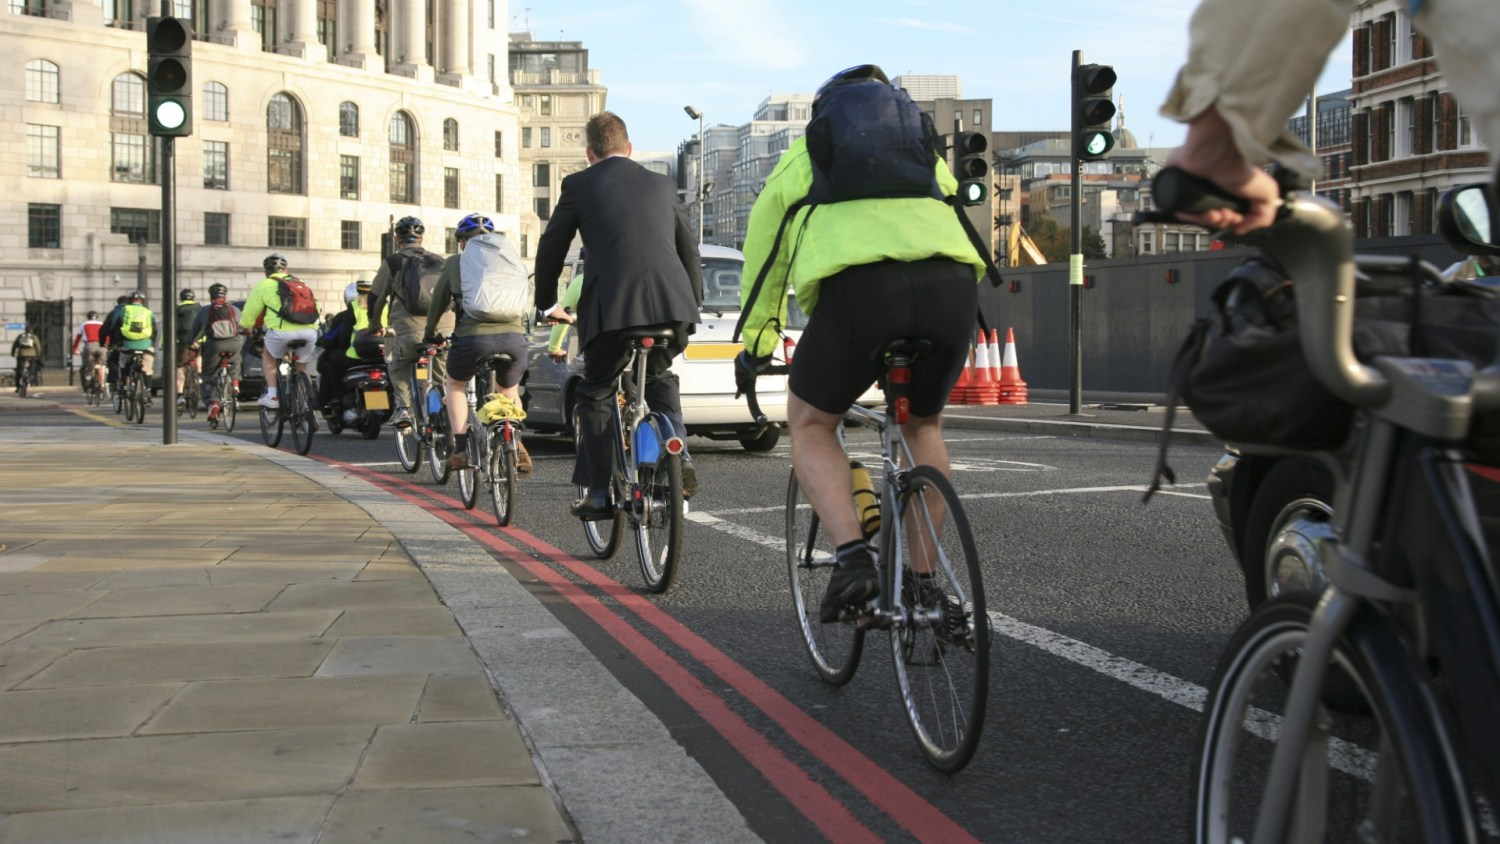 London car-free day September 22nd